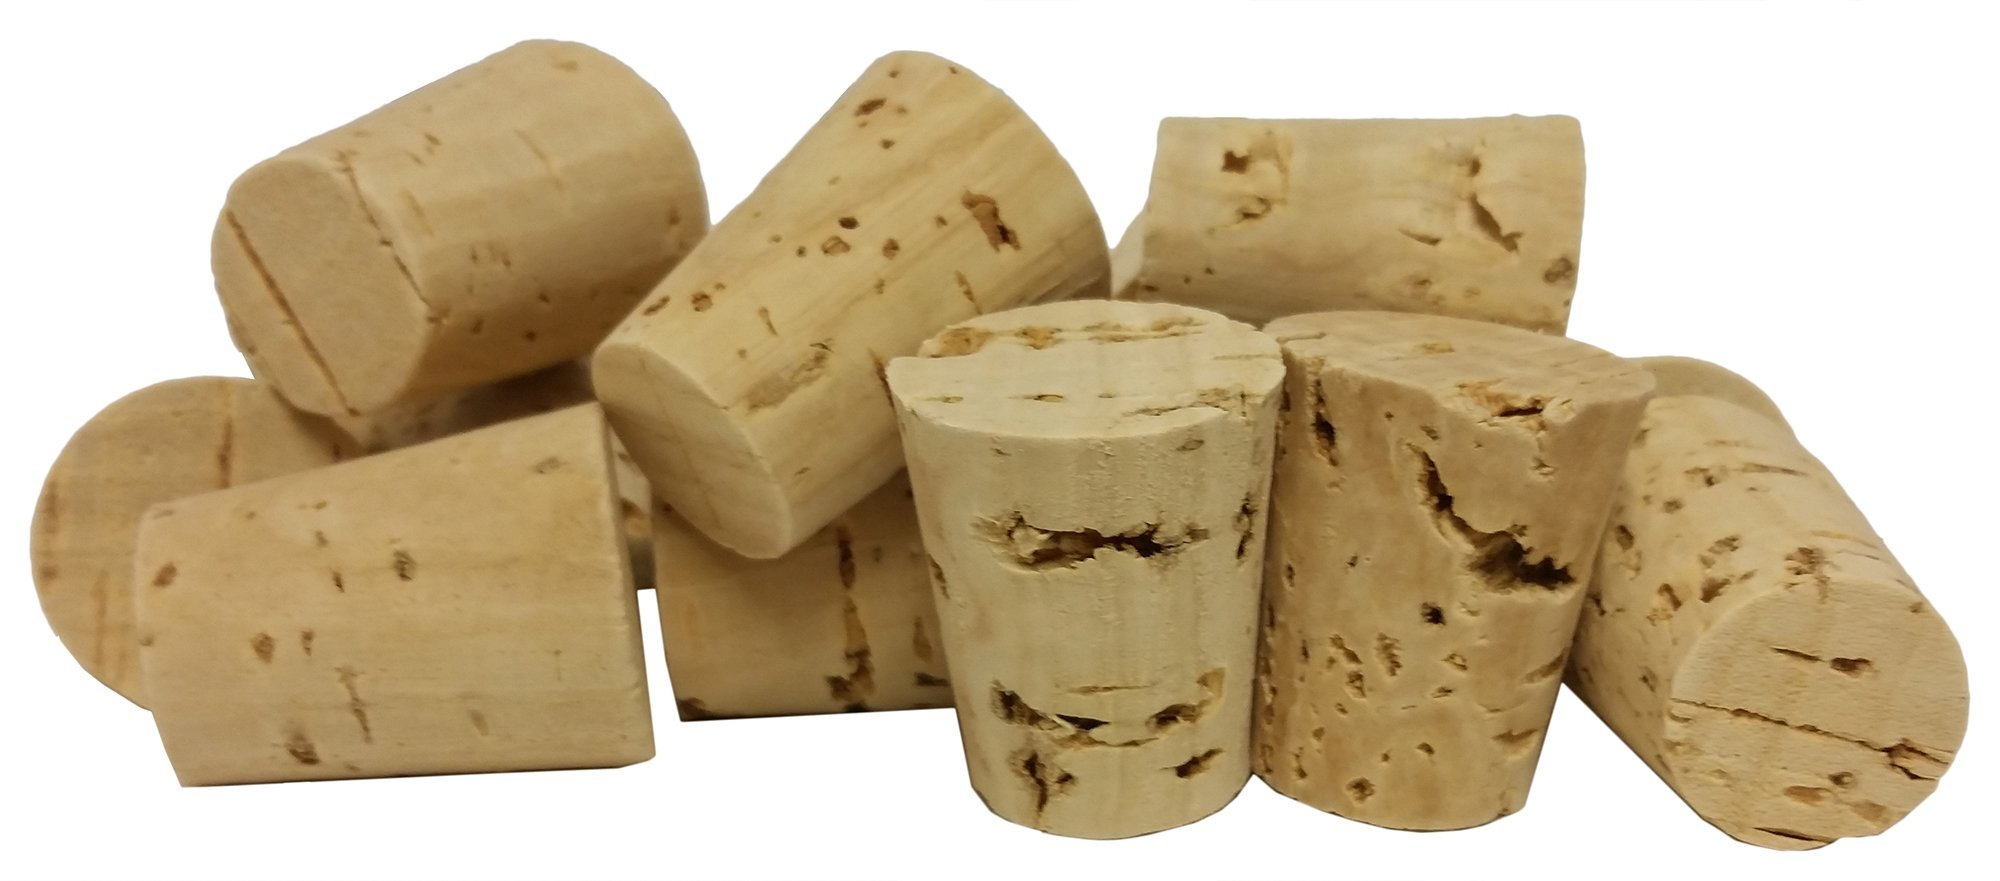 GSC International CS-9-100 Cork Stopper, Size 9 (Pack of 100) by GSC International